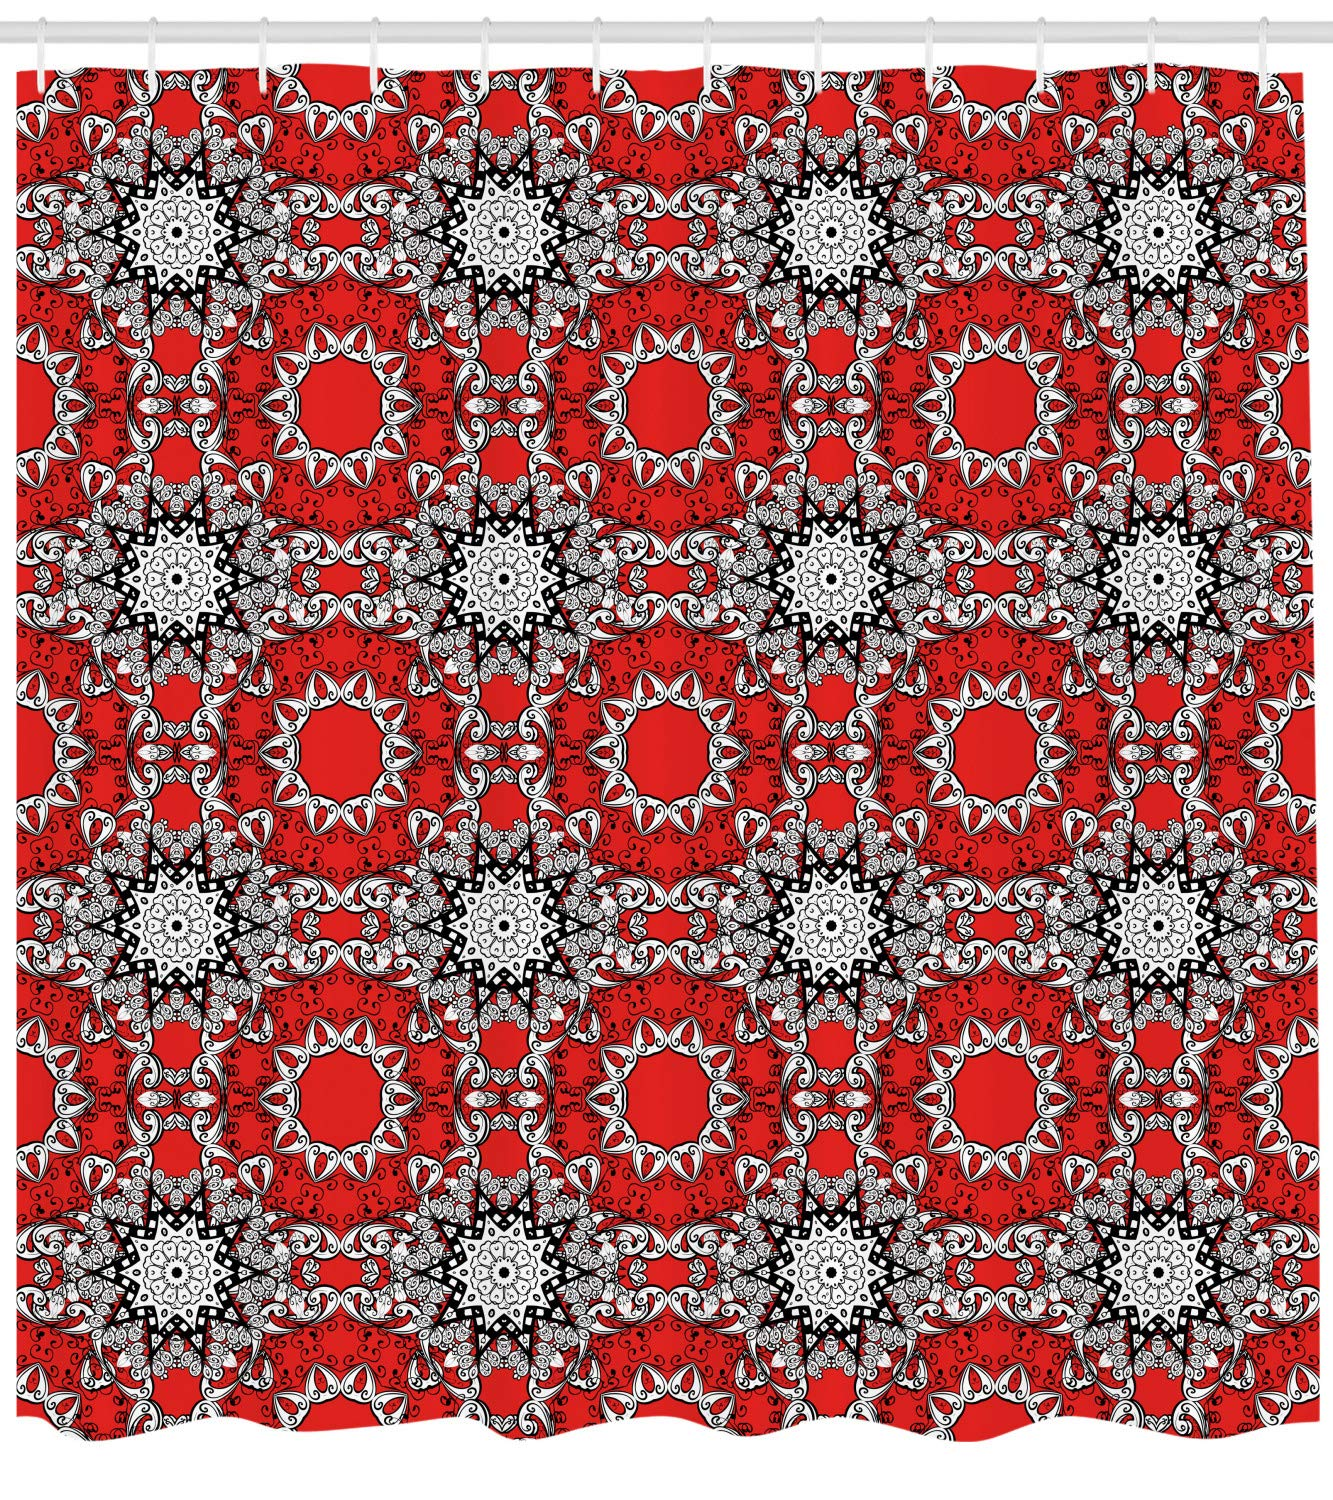 Red Mandala Shower Curtain Vibrant Doodle Art Print for Bathroom 70 Inches Long